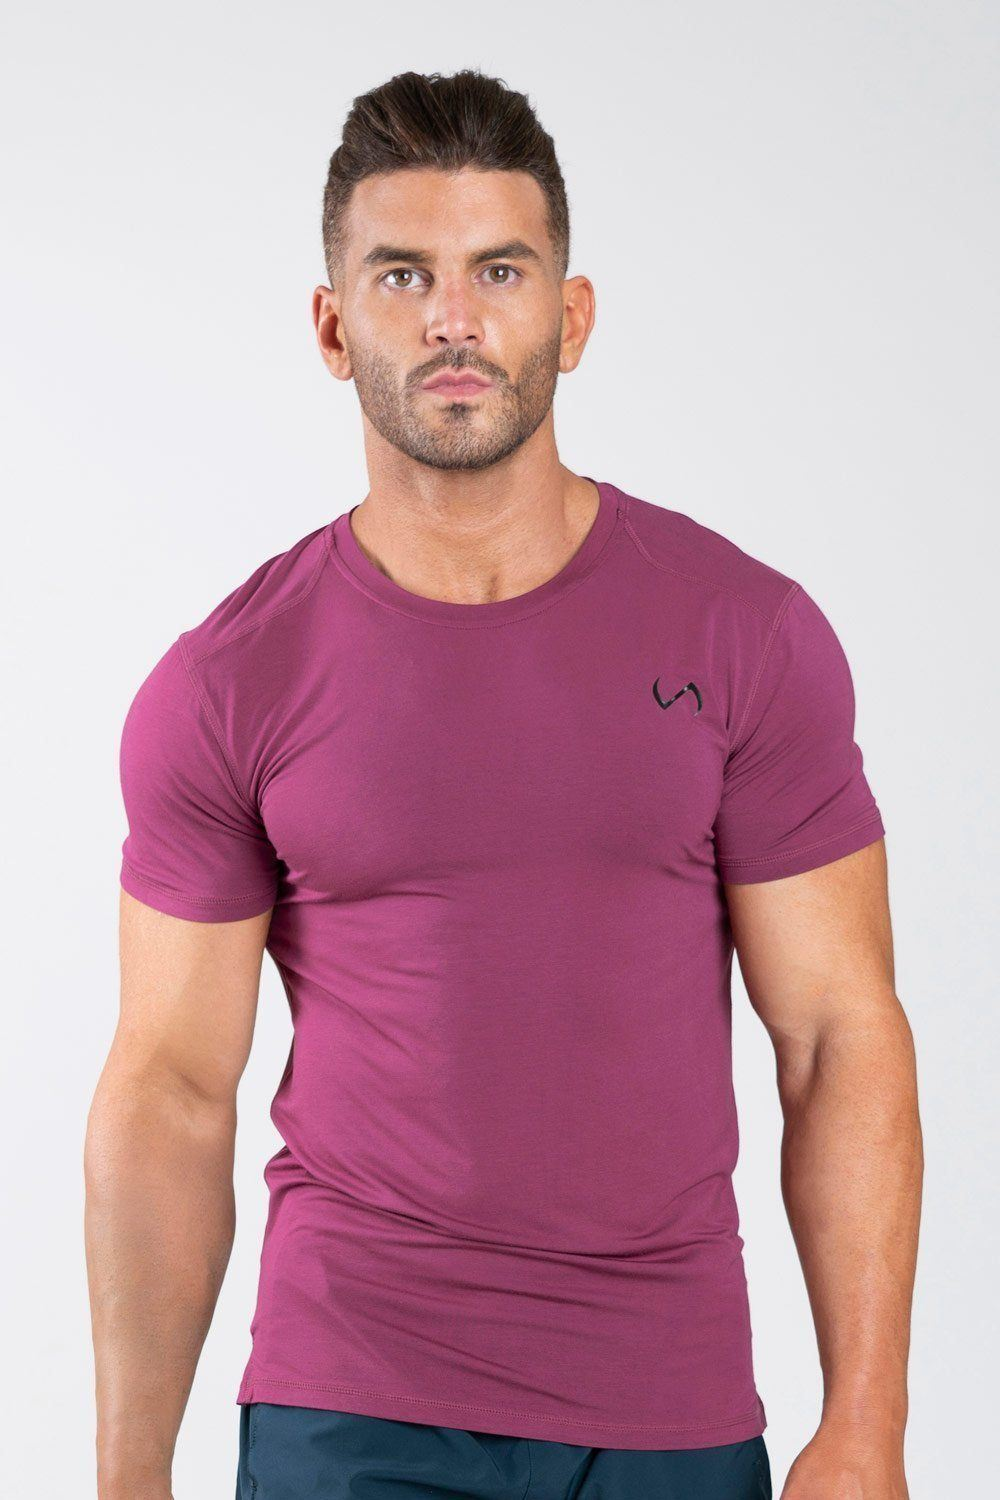 TLF Root Performance Bamboo Crew Neck - Short Sleeves - TLF Apparel   Take Life Further